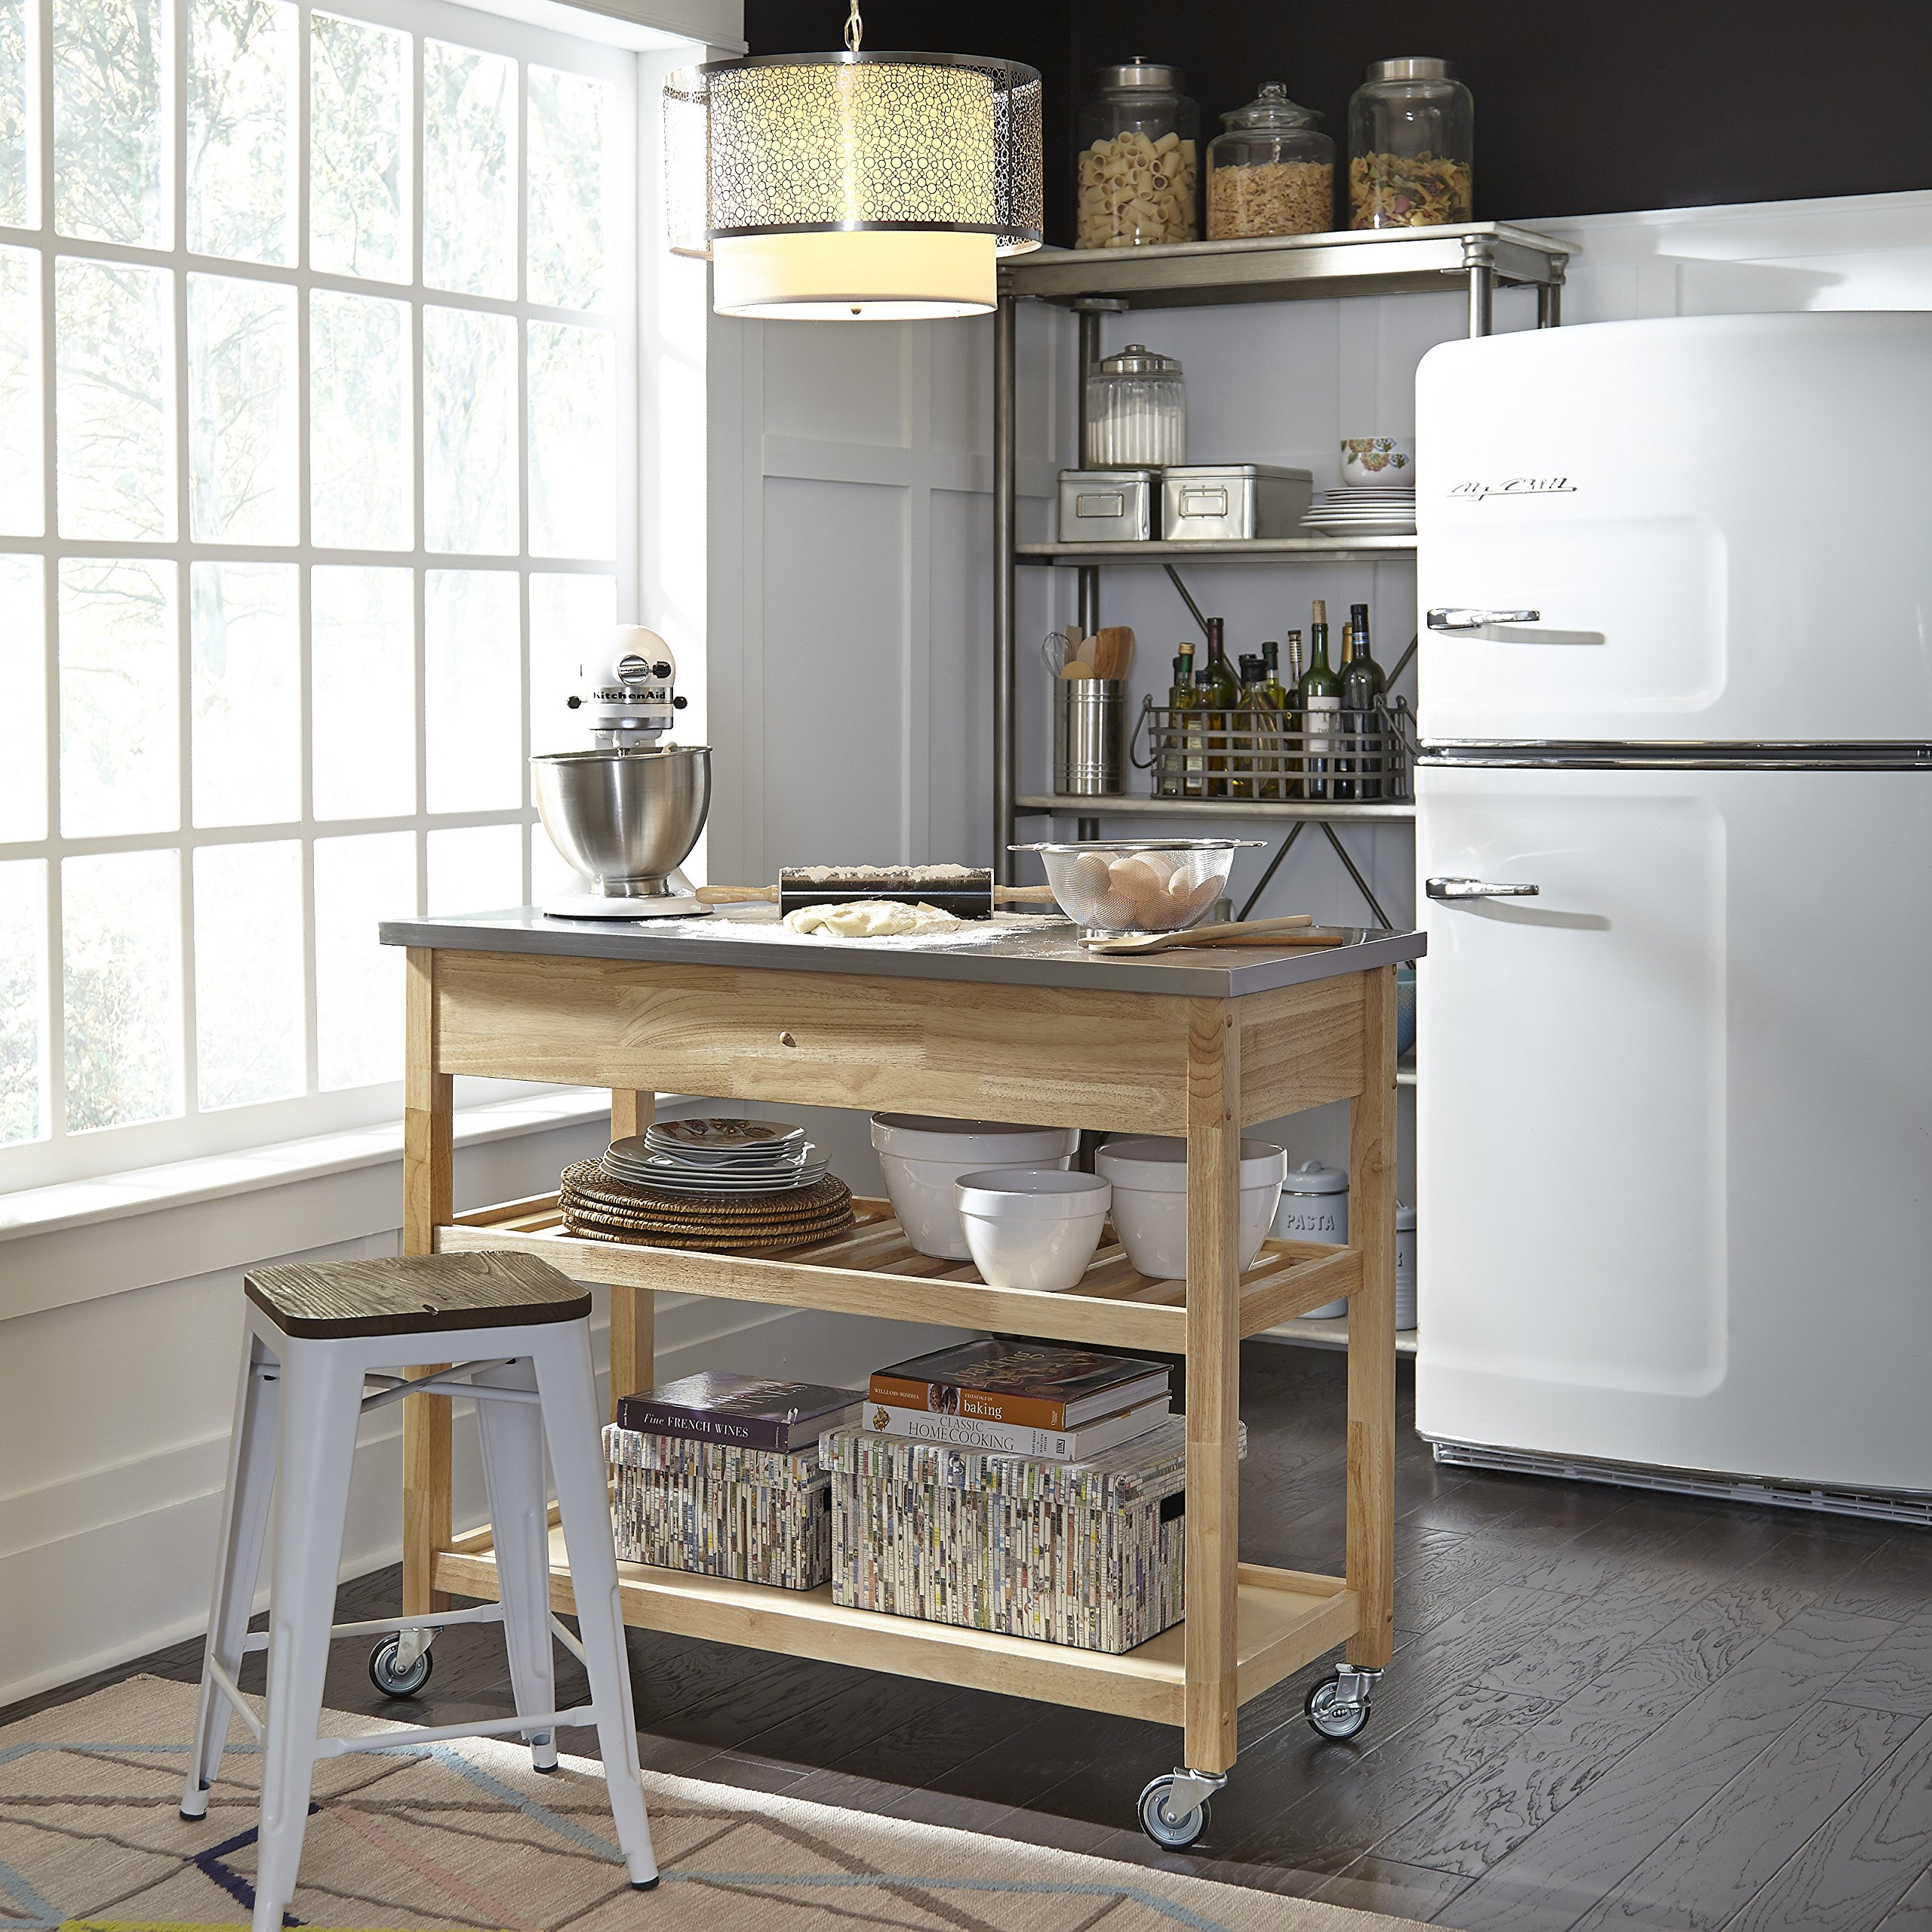 Home styles natural designer utility cart parent best carts Home styles natural designer utility cart